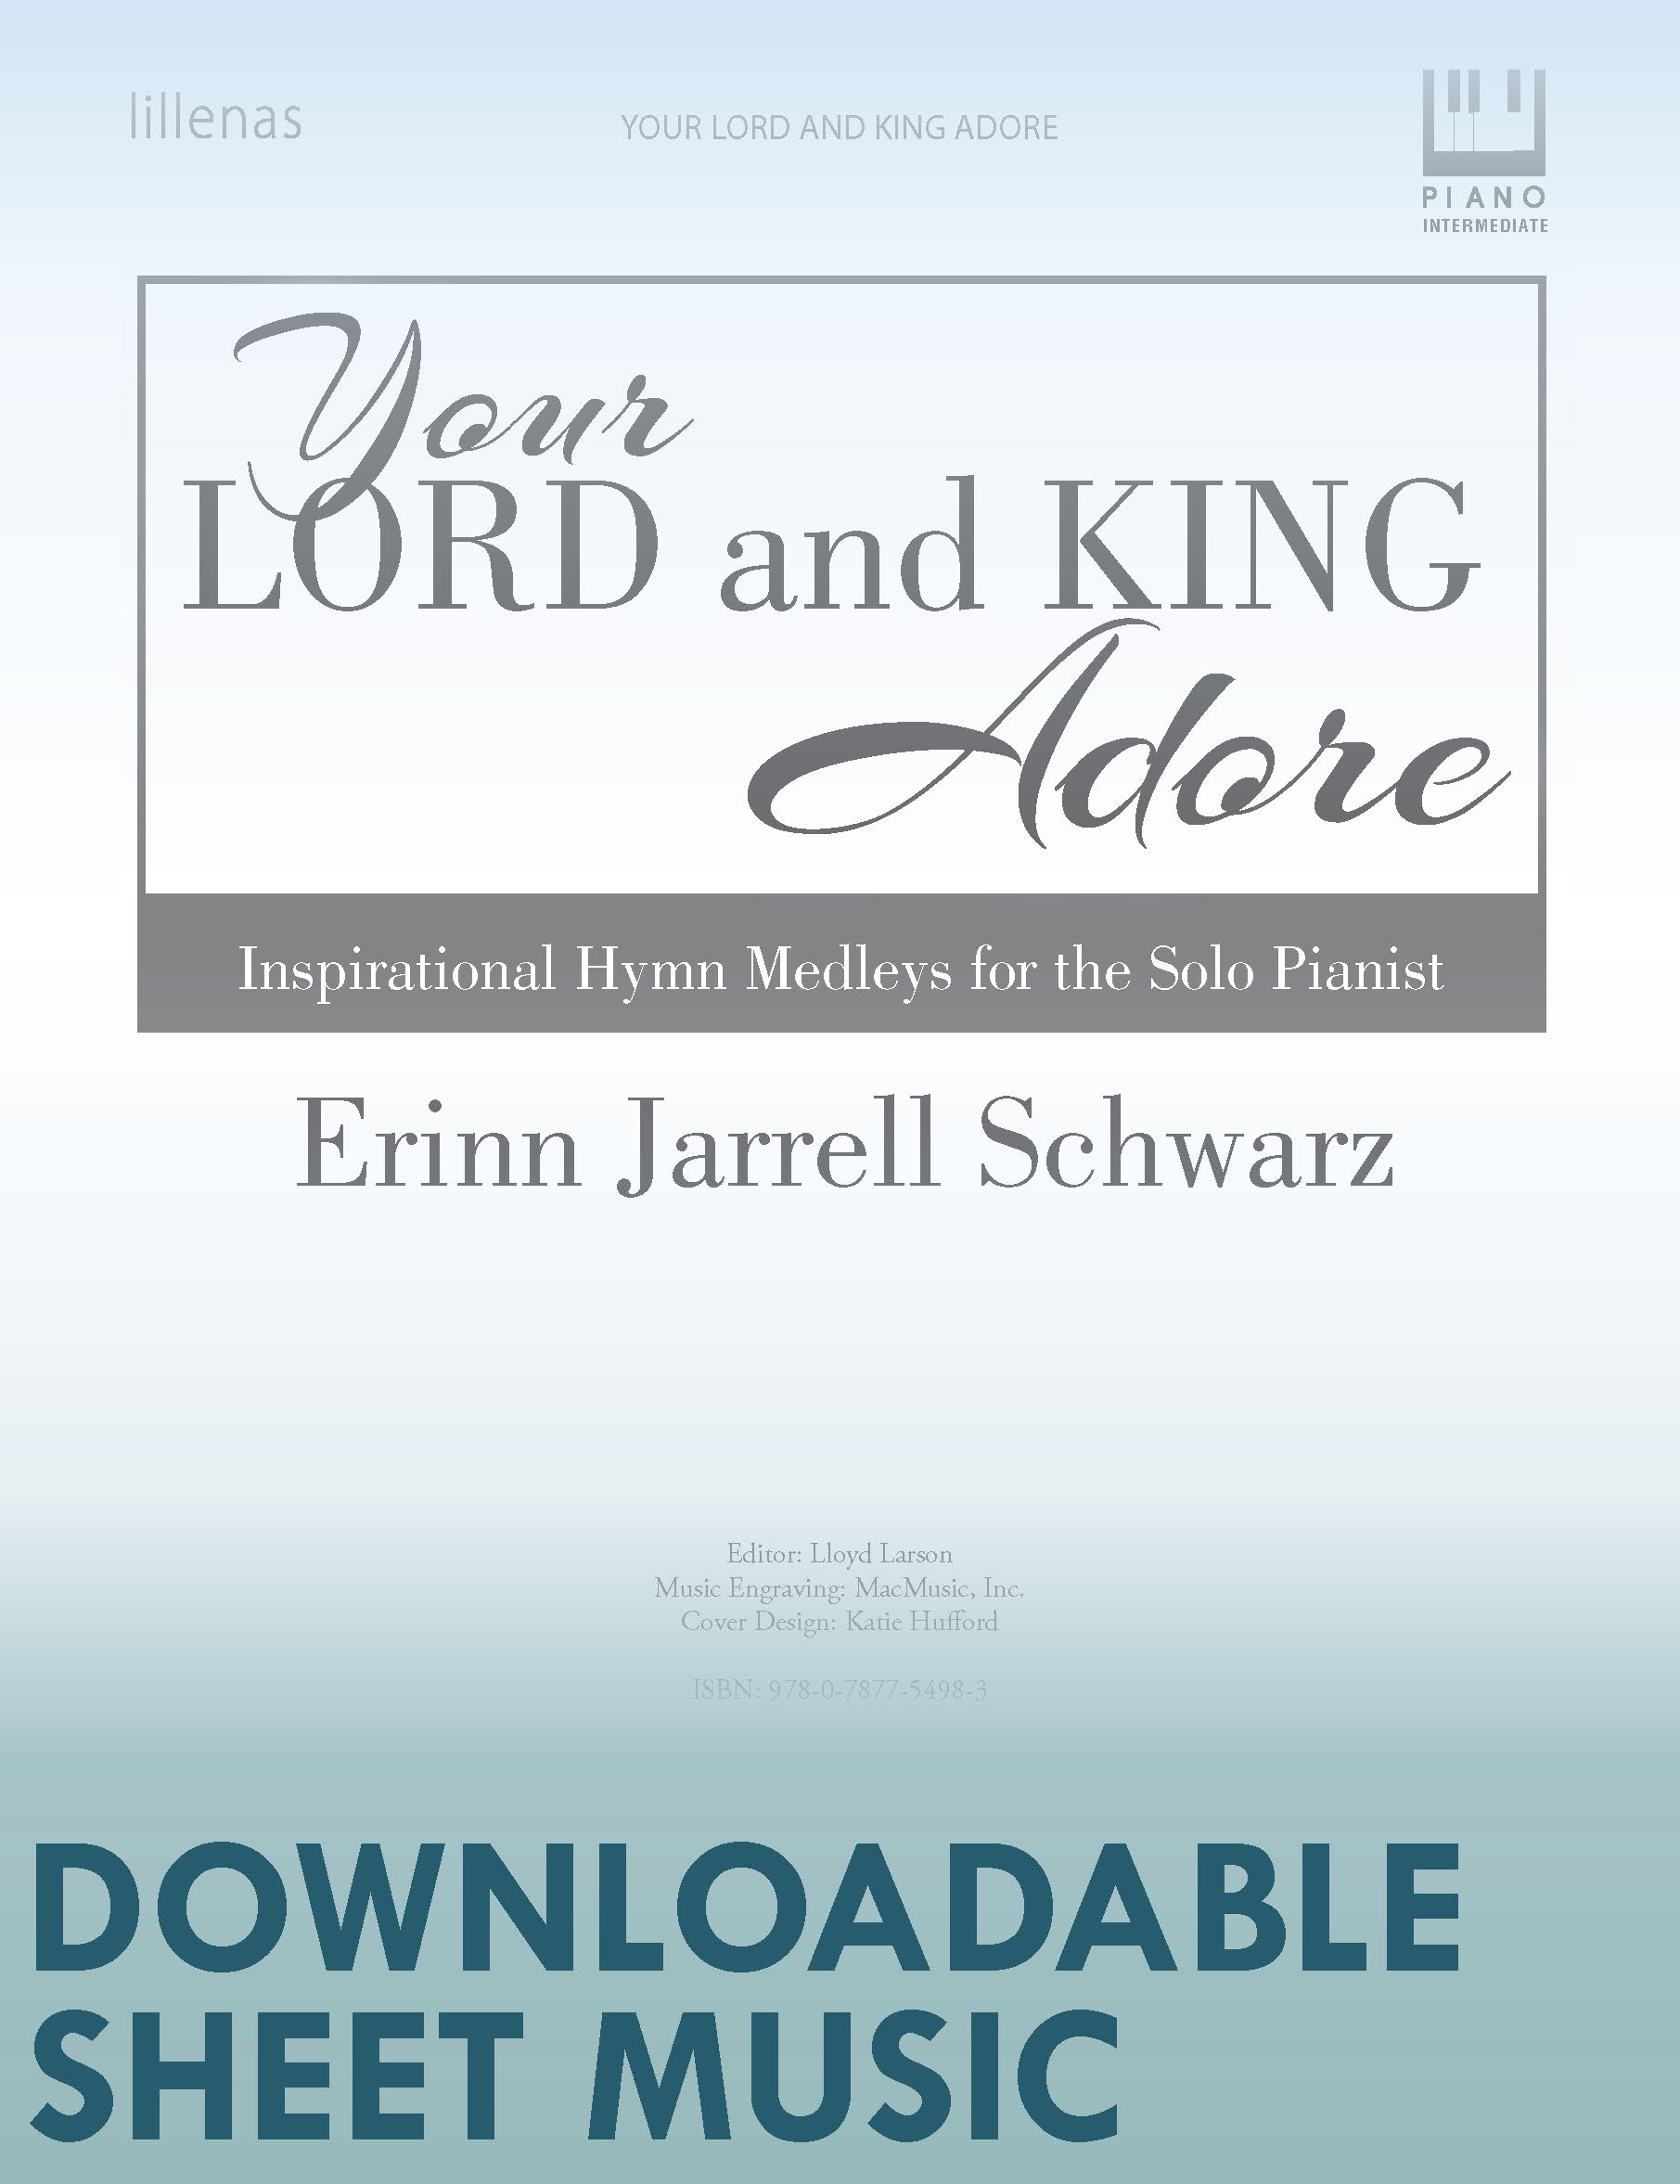 Your Lord and King Adore - Digital download